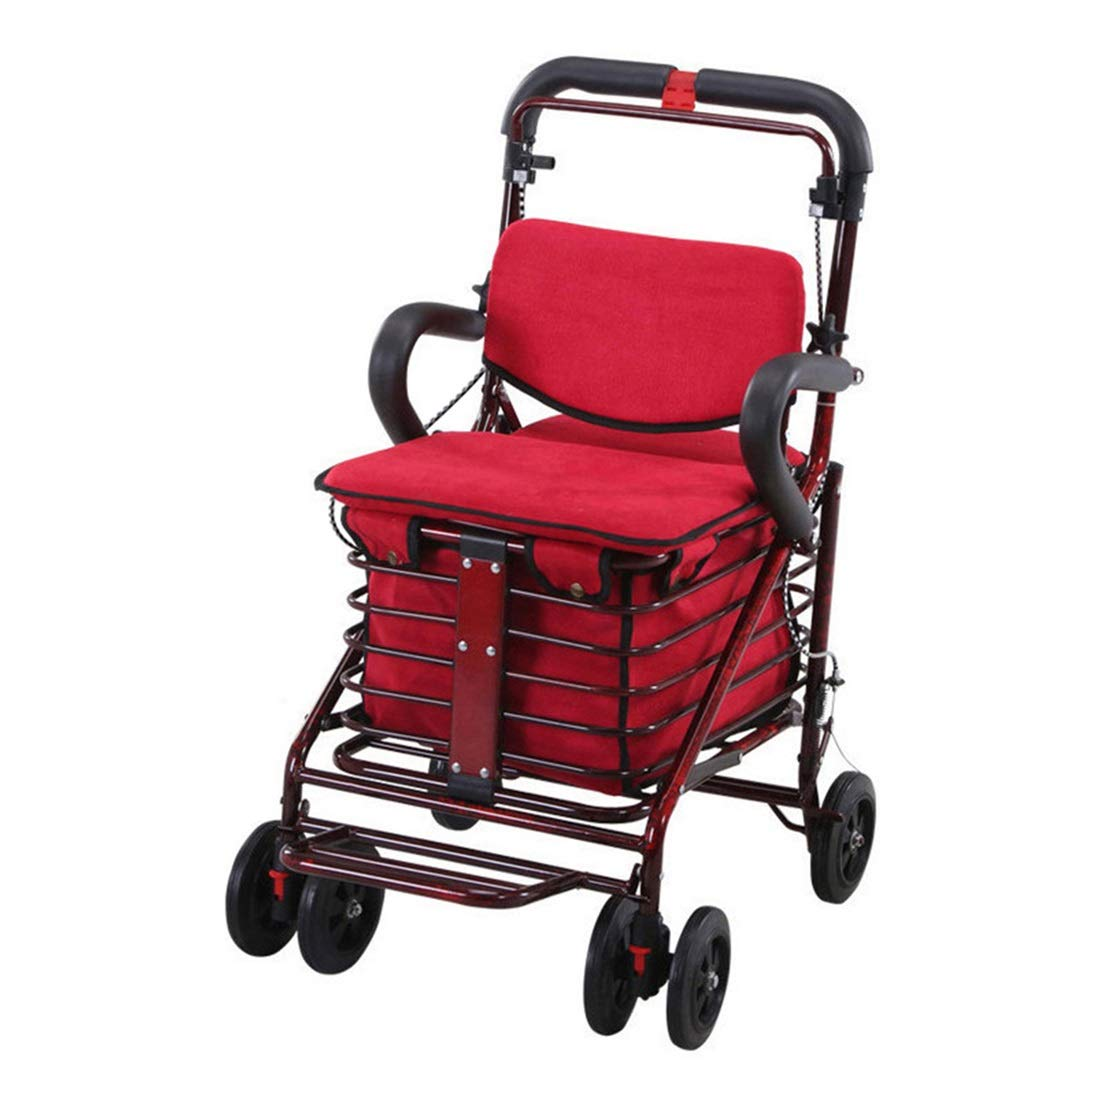 Walking Frame with Wheels Narrow,Lightweight Four Wheeled Rollator with Lockable Brake for Height Adjustment Auxiliary Walking Safety Walker (Size : Red)